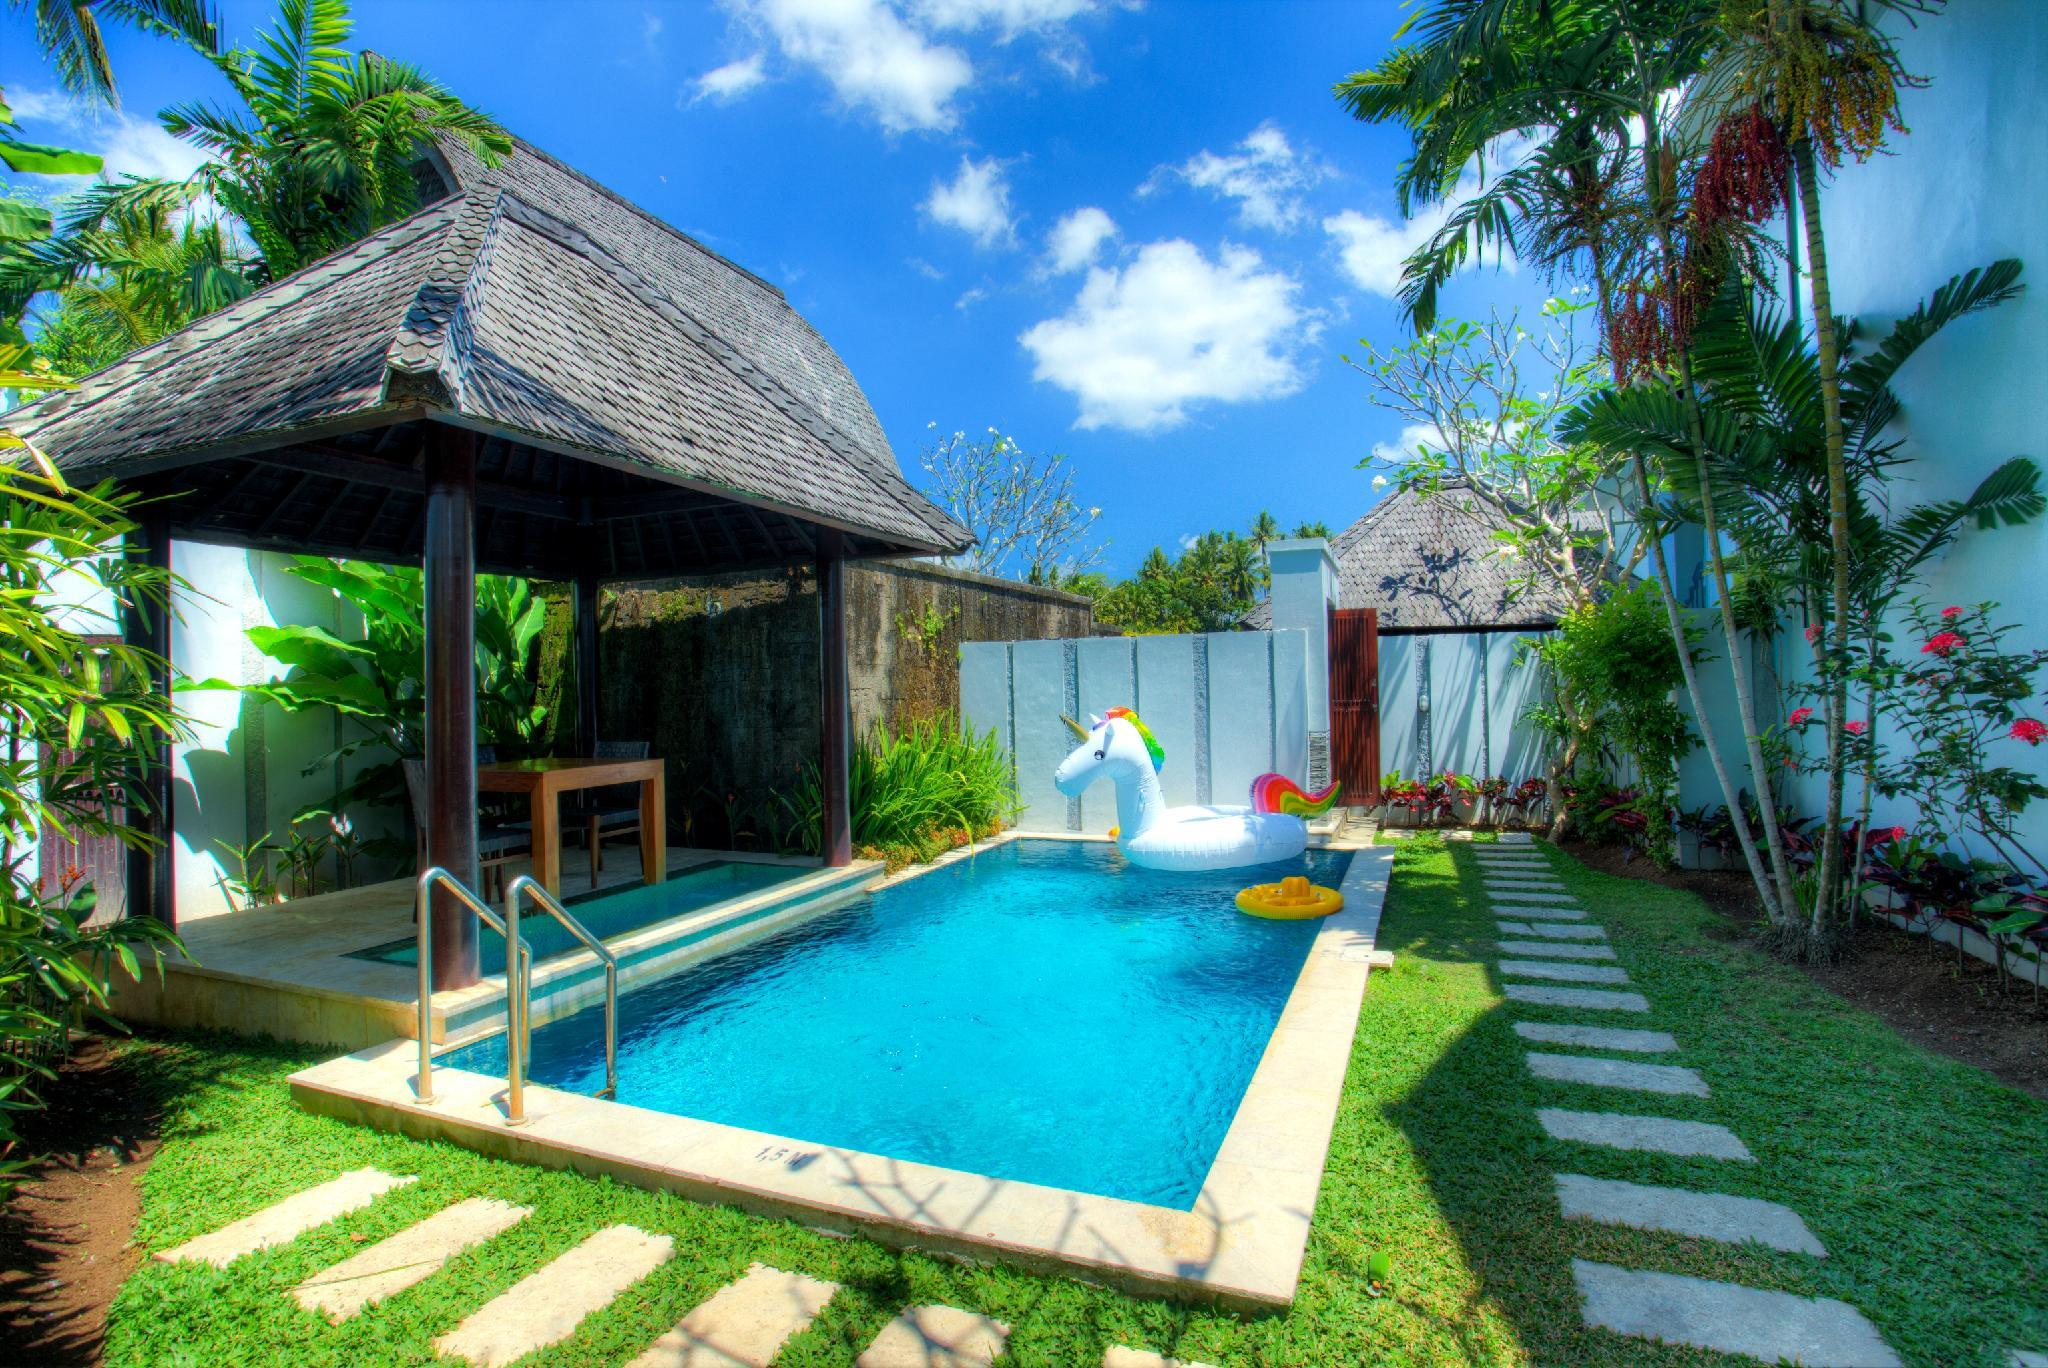 Furama Villas and Spa Ubud